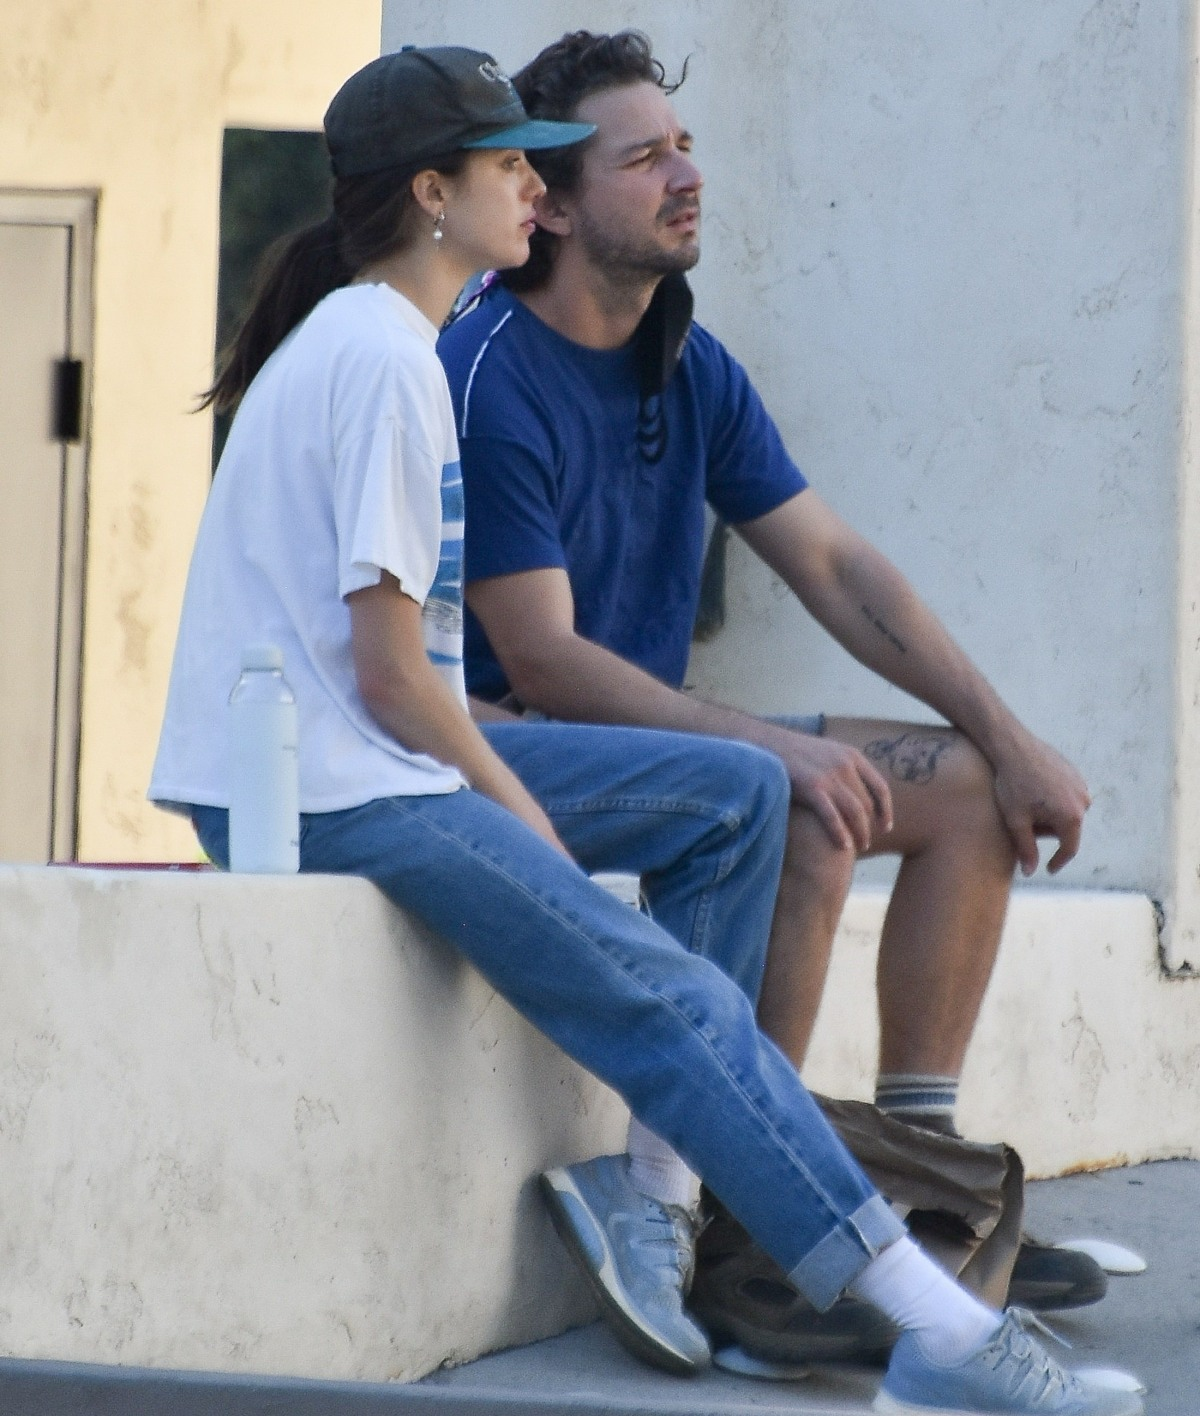 Shia LaBeouf and girlfriend Margaret Qualley picking up food to go